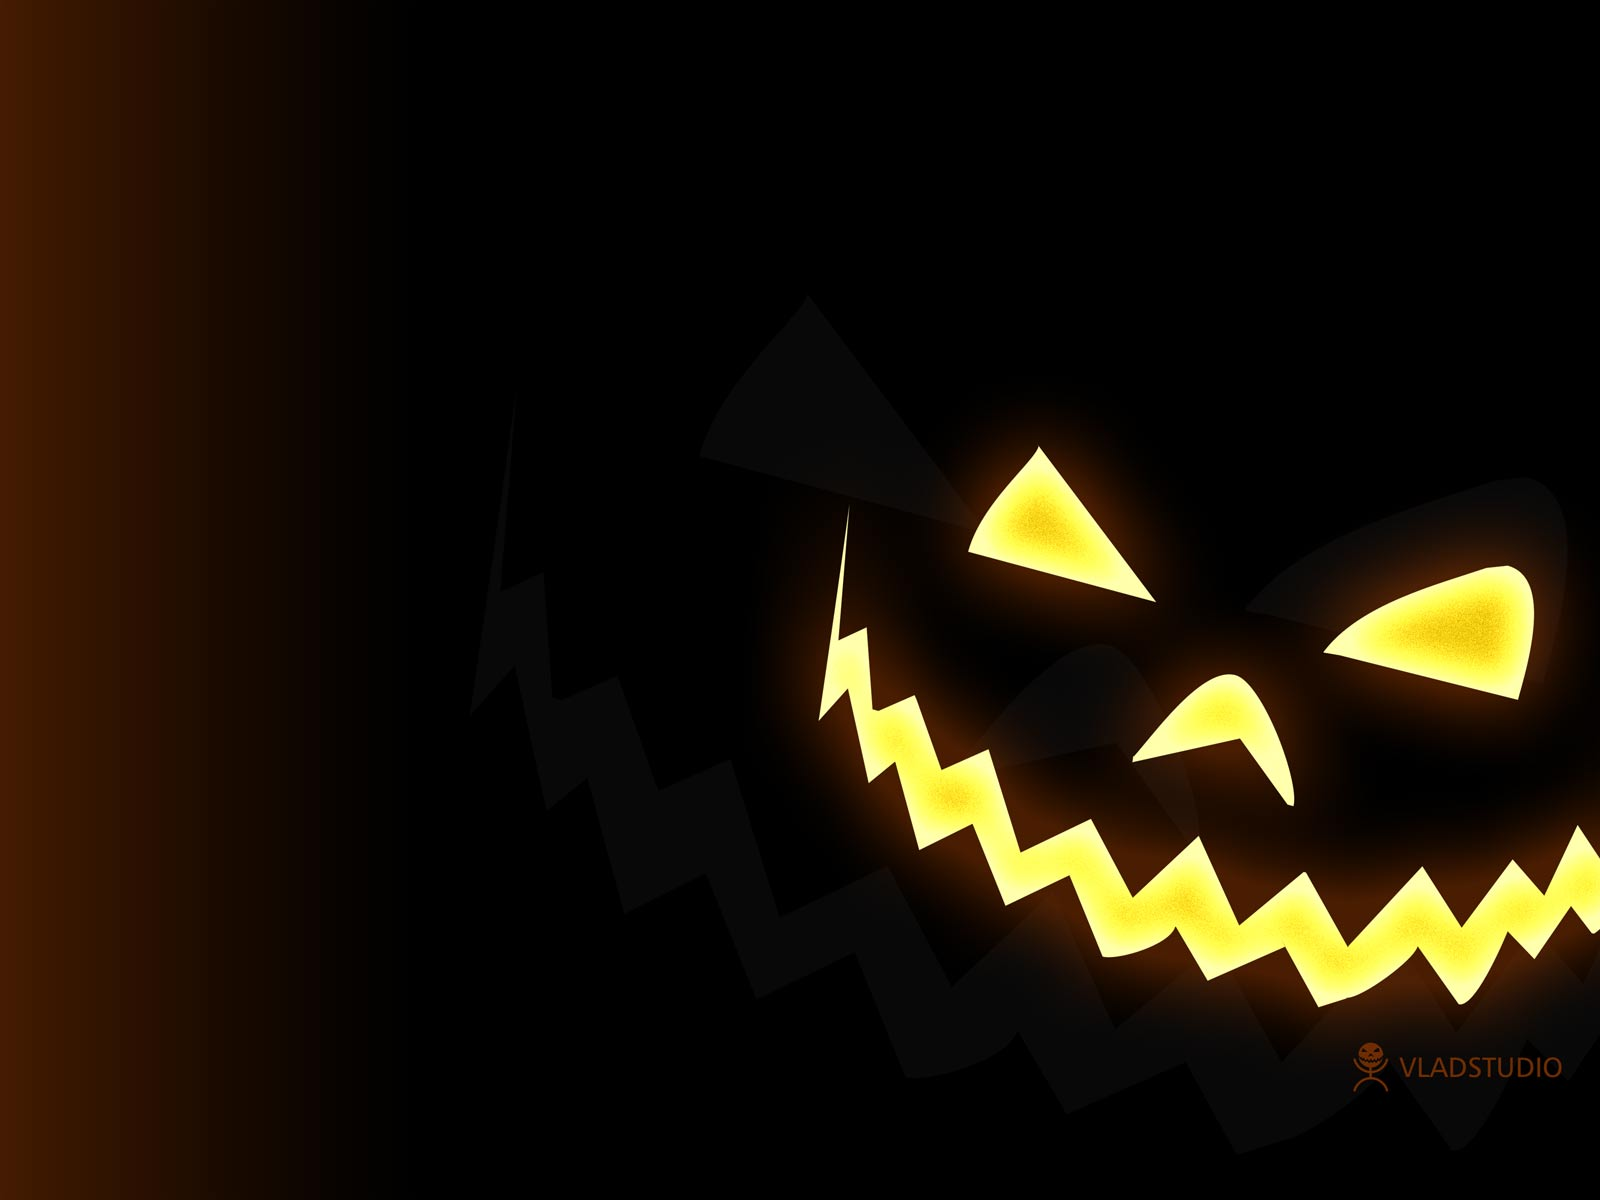 http://4.bp.blogspot.com/-G4QdbIa7vME/UHz5Be8qiPI/AAAAAAAAHWA/LomSAaRbVJM/s1600/Halloween%2BWallpaper%2BBackground%2B001.jpg